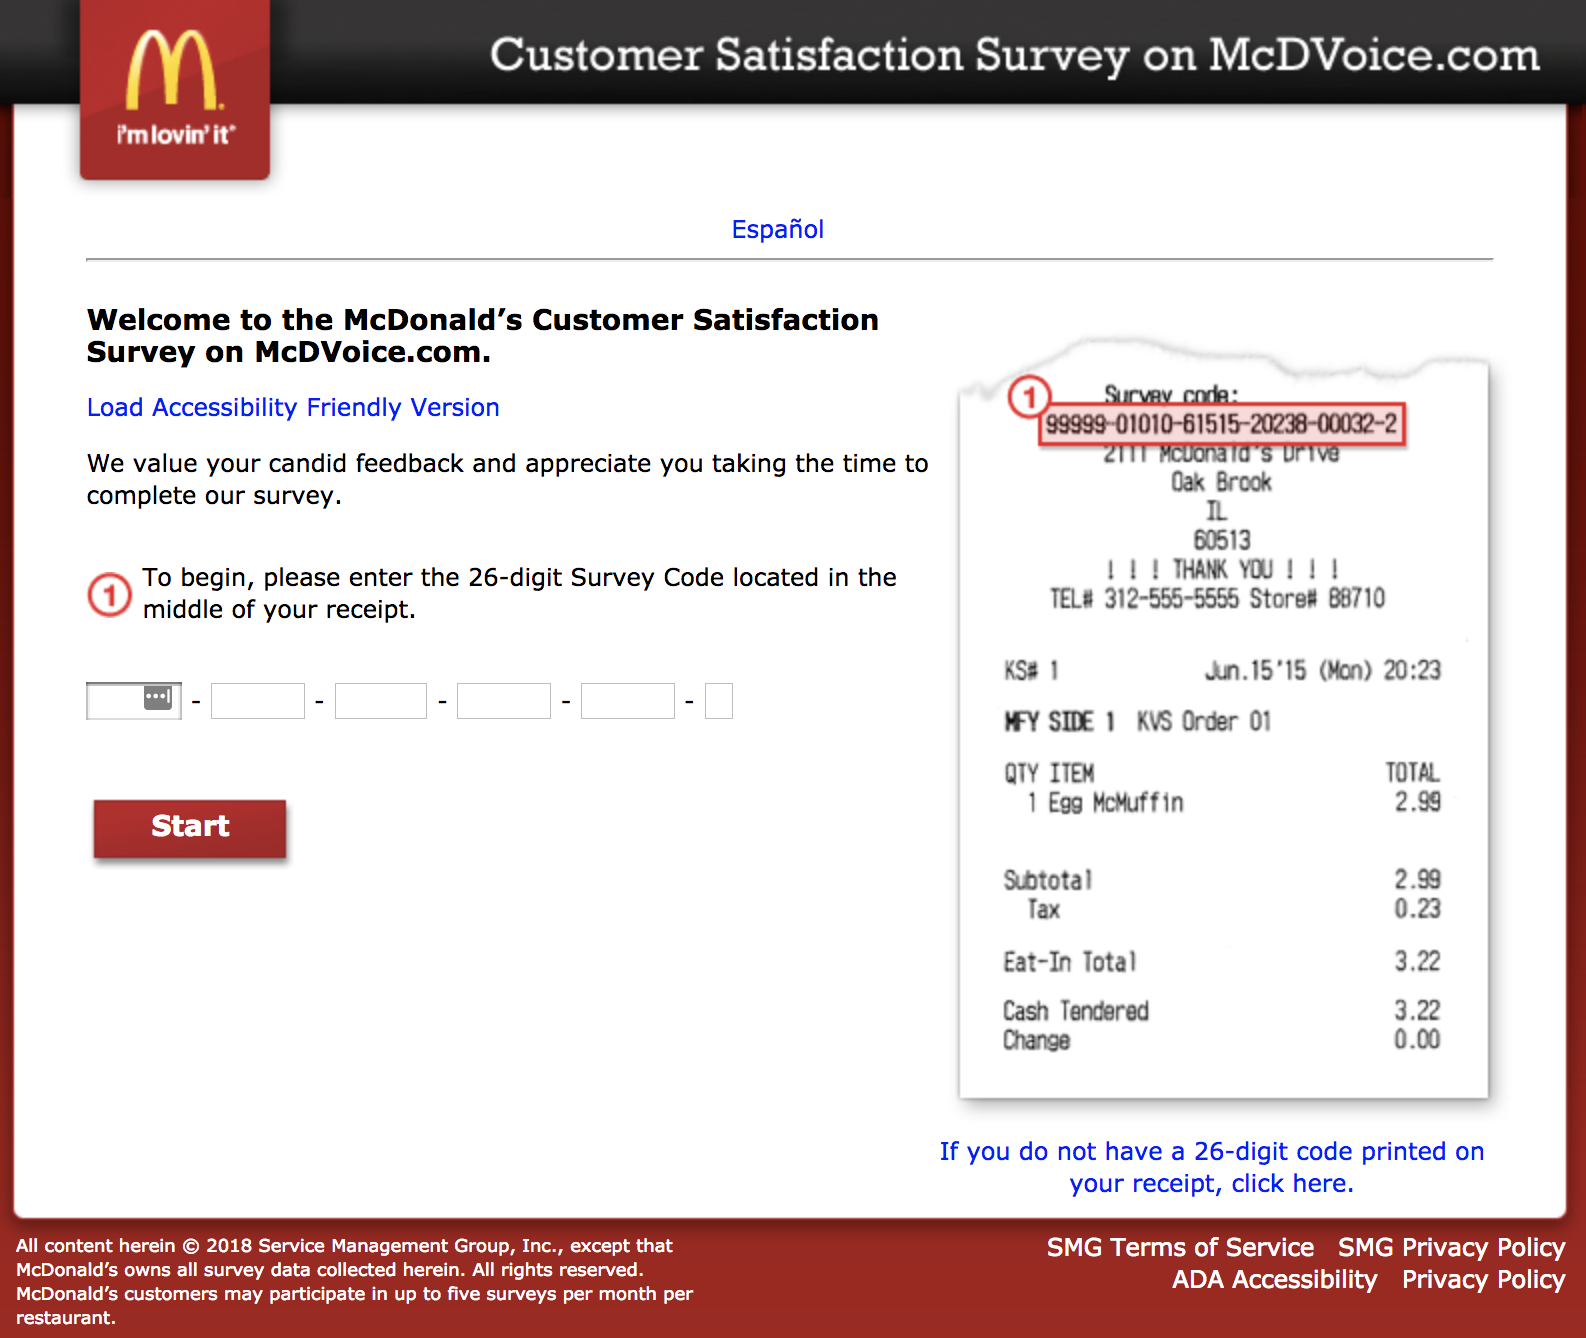 Mcdvoice Customer Survey From Mcdonald Www Mcdvoice Com Great